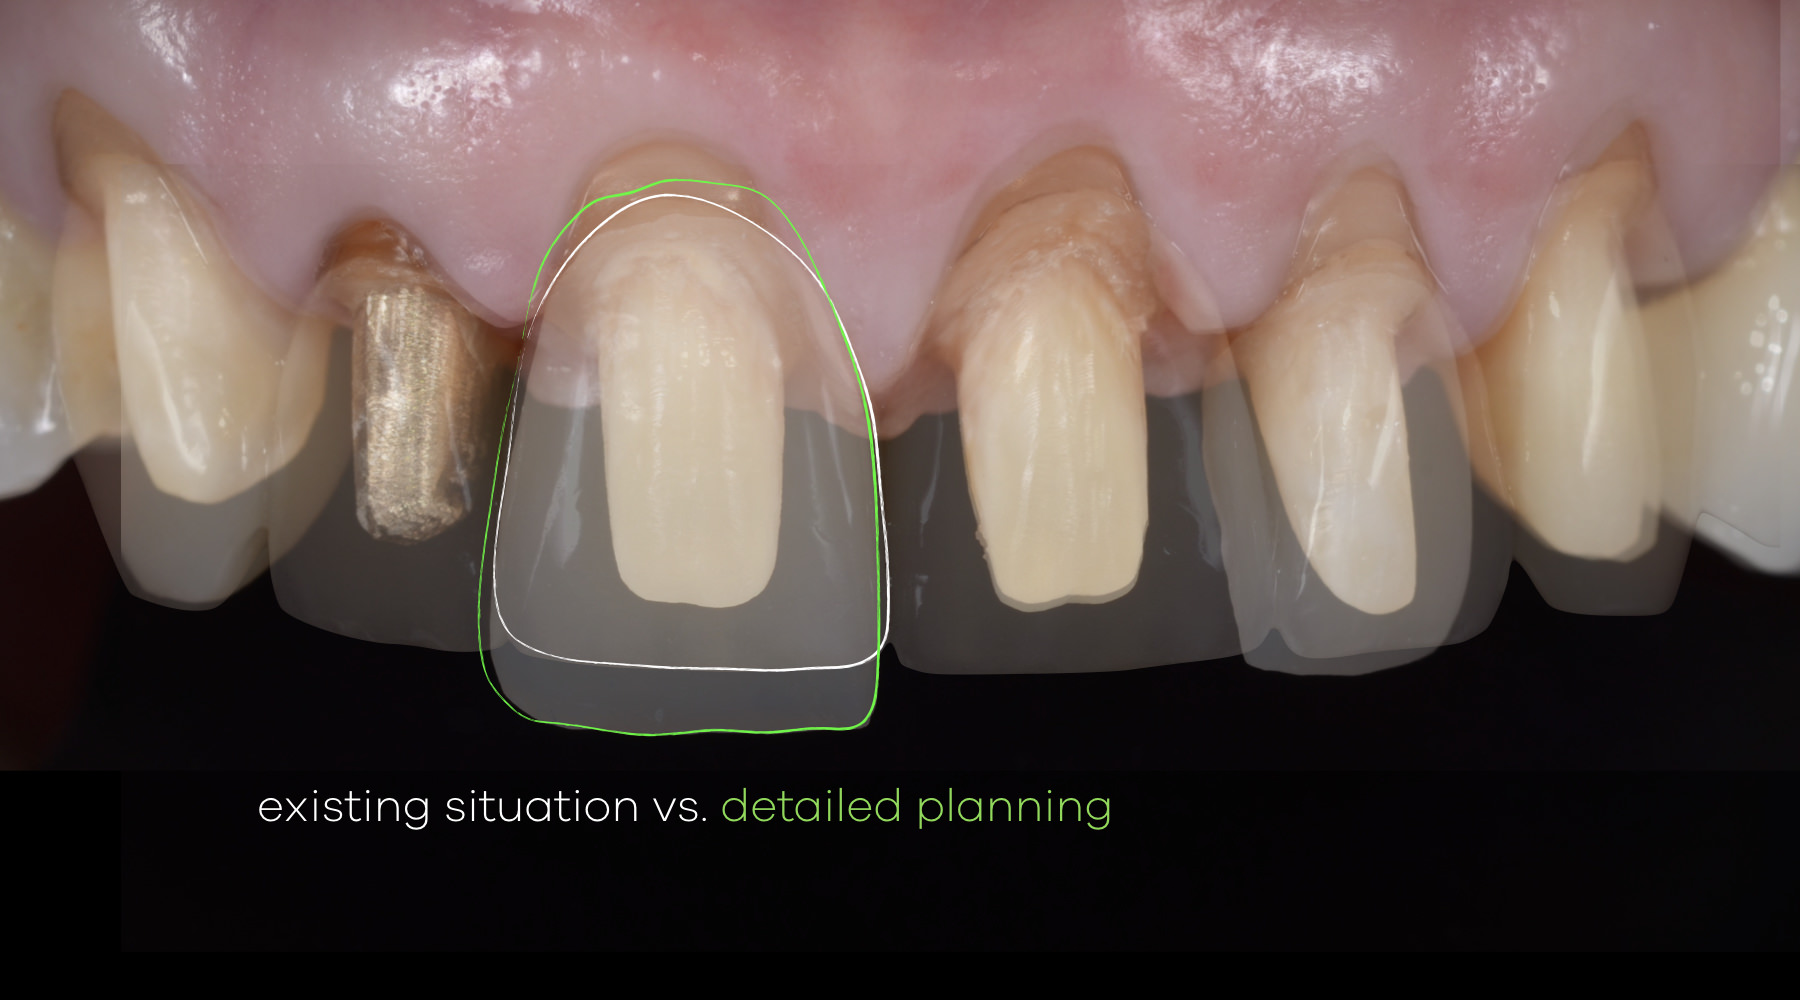 Gingival Recession Treatment - Evaluation and Planning